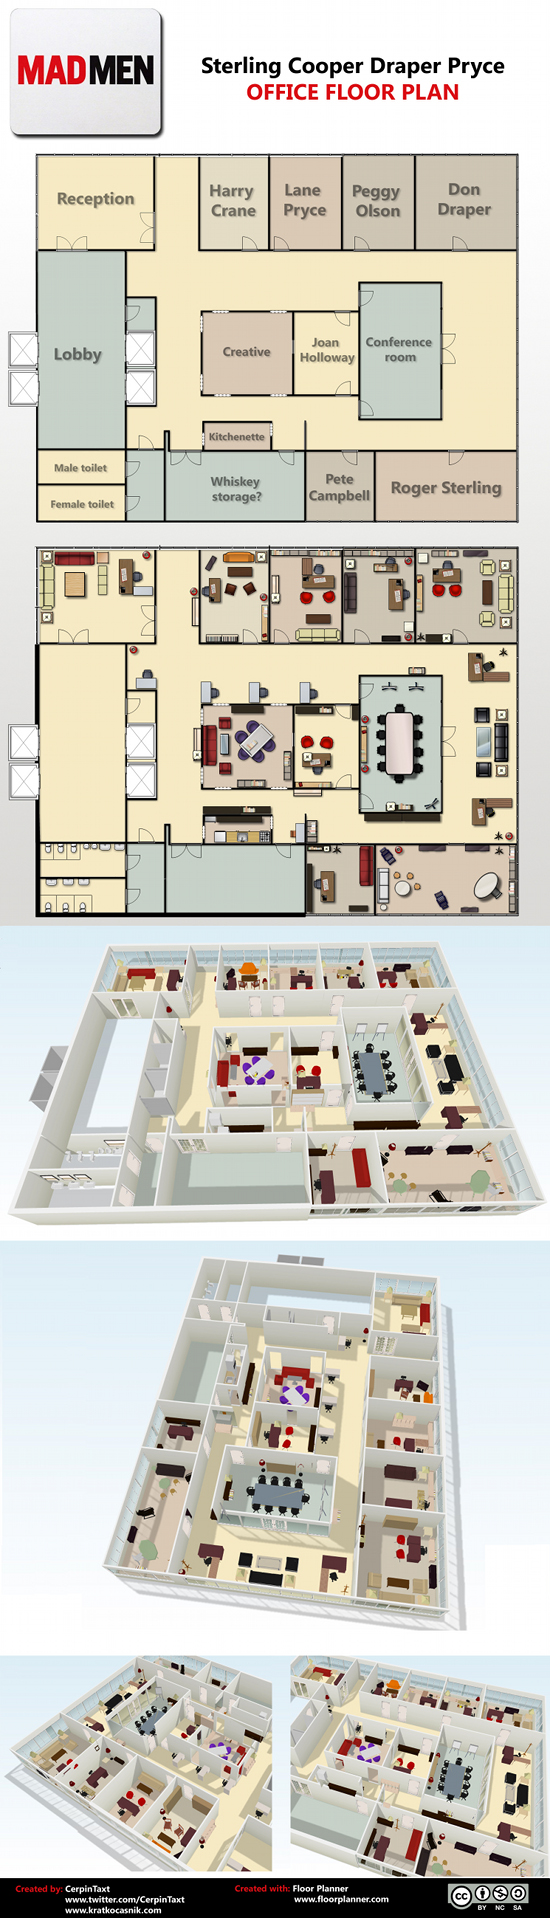 the office floor plan. I\u0027ve Never Seen An Episode, But If My Twitter Stream Has Taught Me Anything, It\u0027s That Many Of You Will Enjoy This Floor Plan The Mad Men Office By